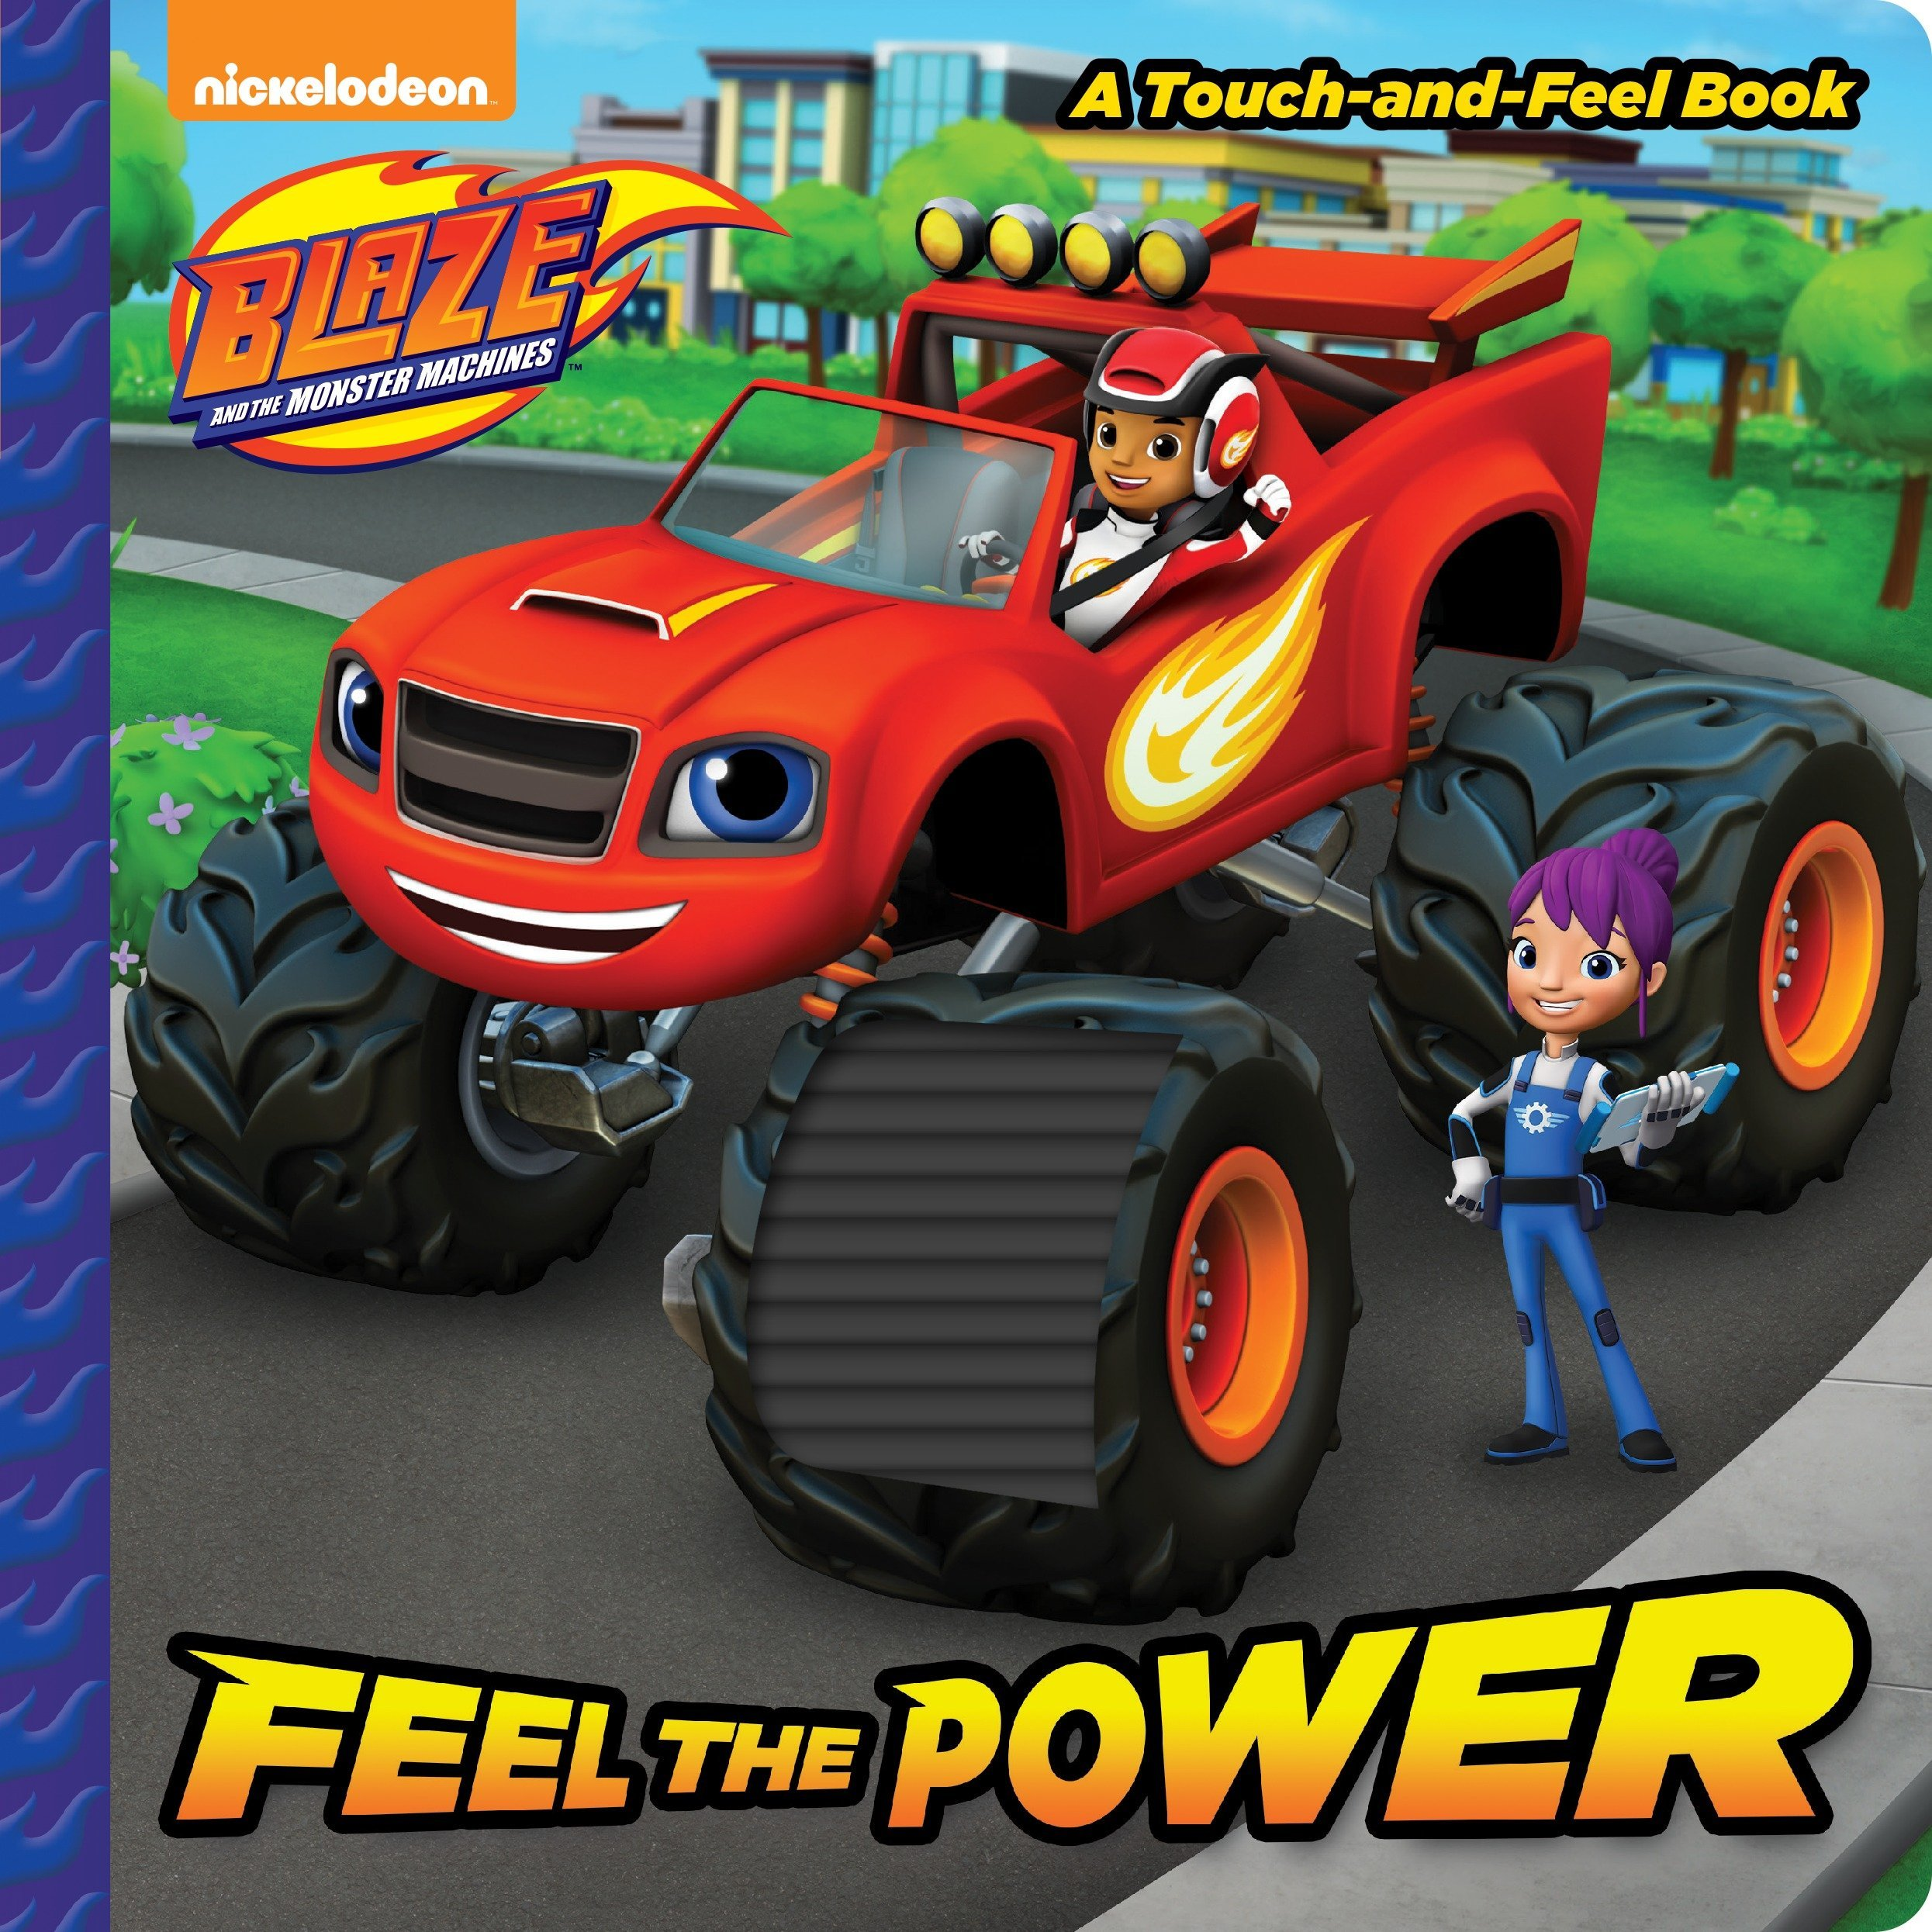 Feel the Power (Blaze and the Monster Machines) (Touch-and-Feel) PDF